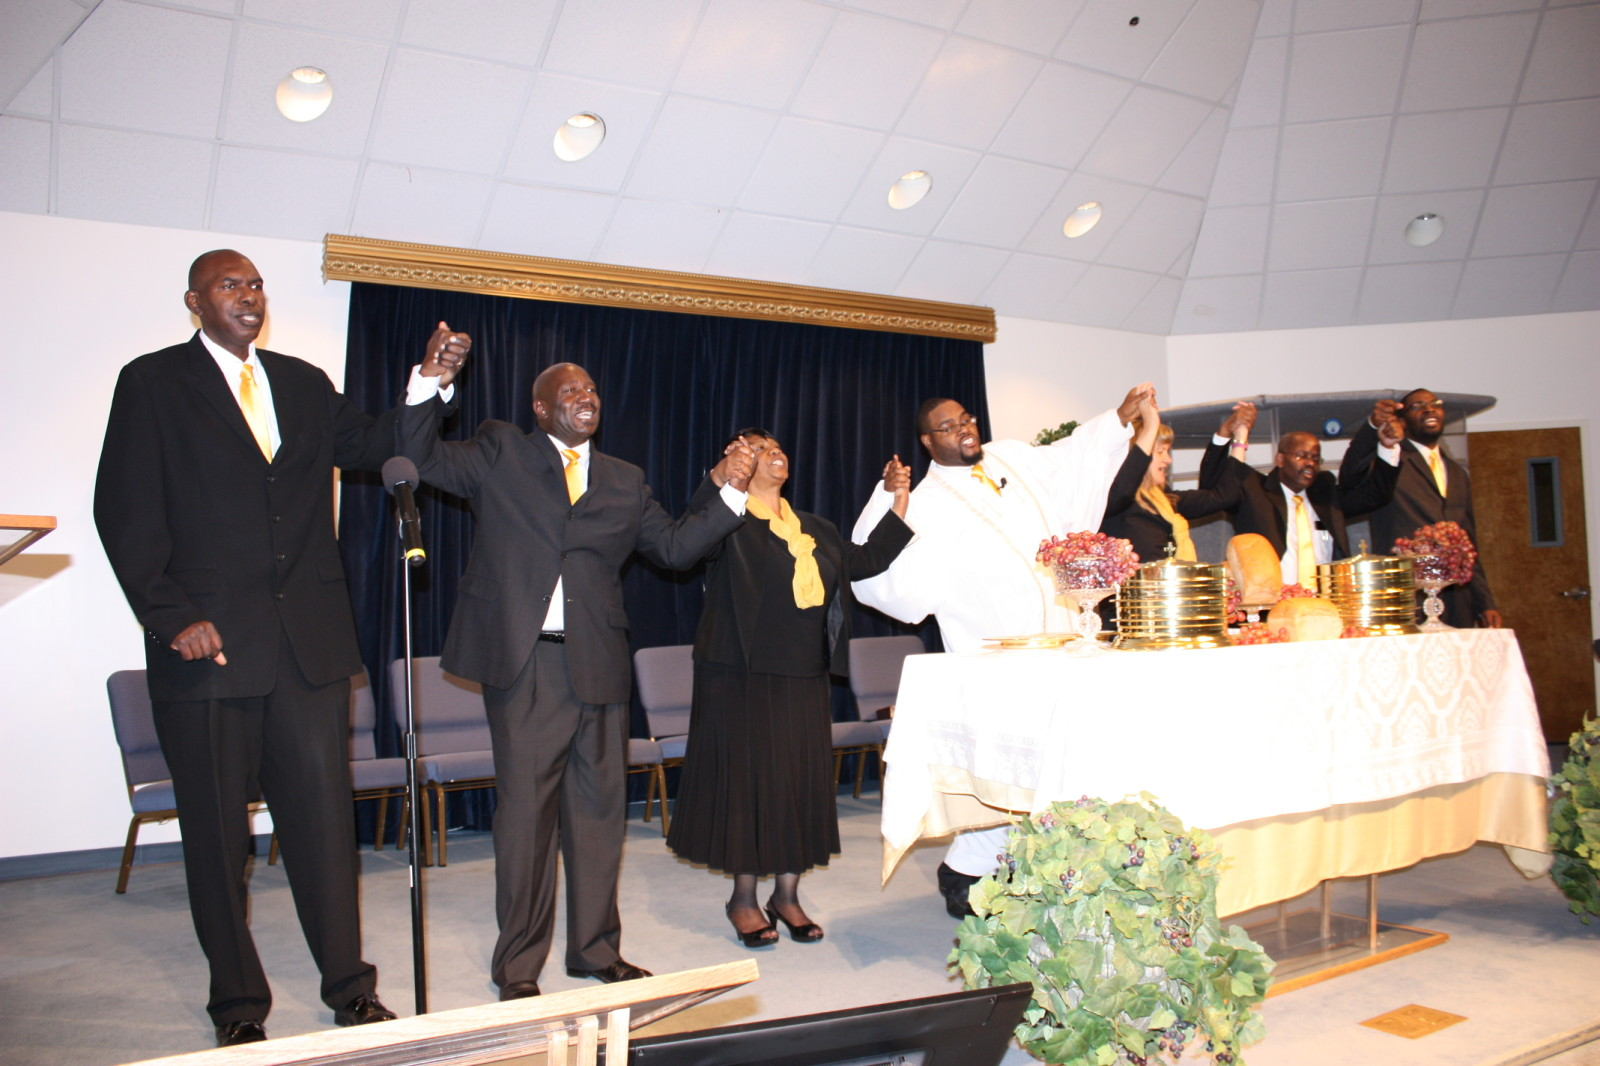 Communion at New Life SDA Church